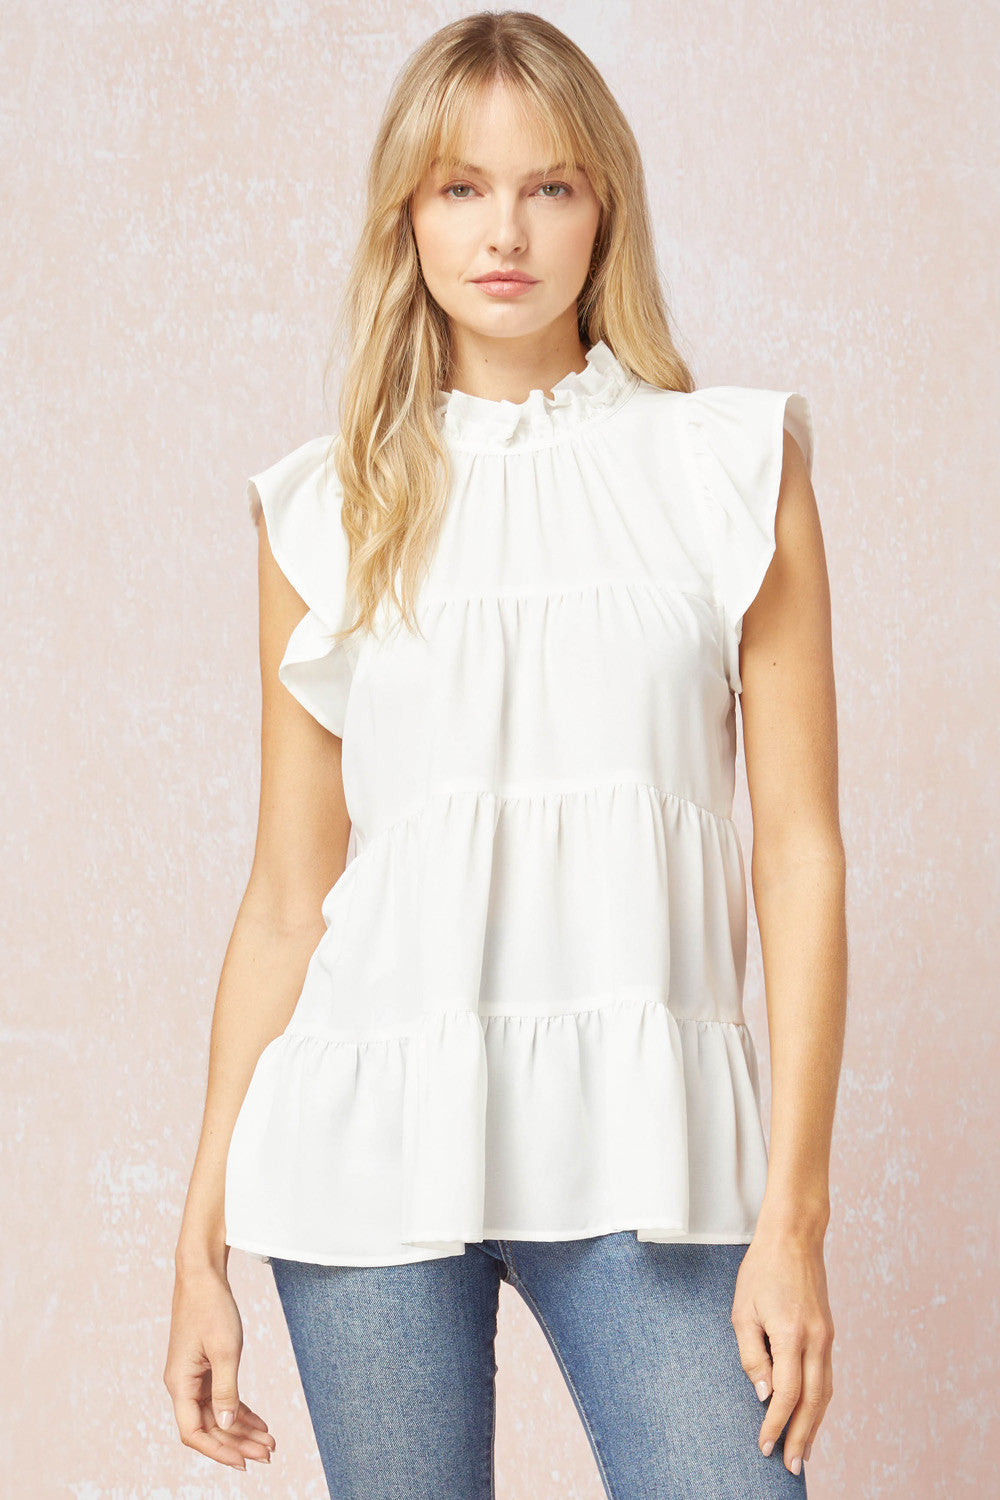 Solid mock neck ruffle sleeve tiered top featuring self tie detail at back.